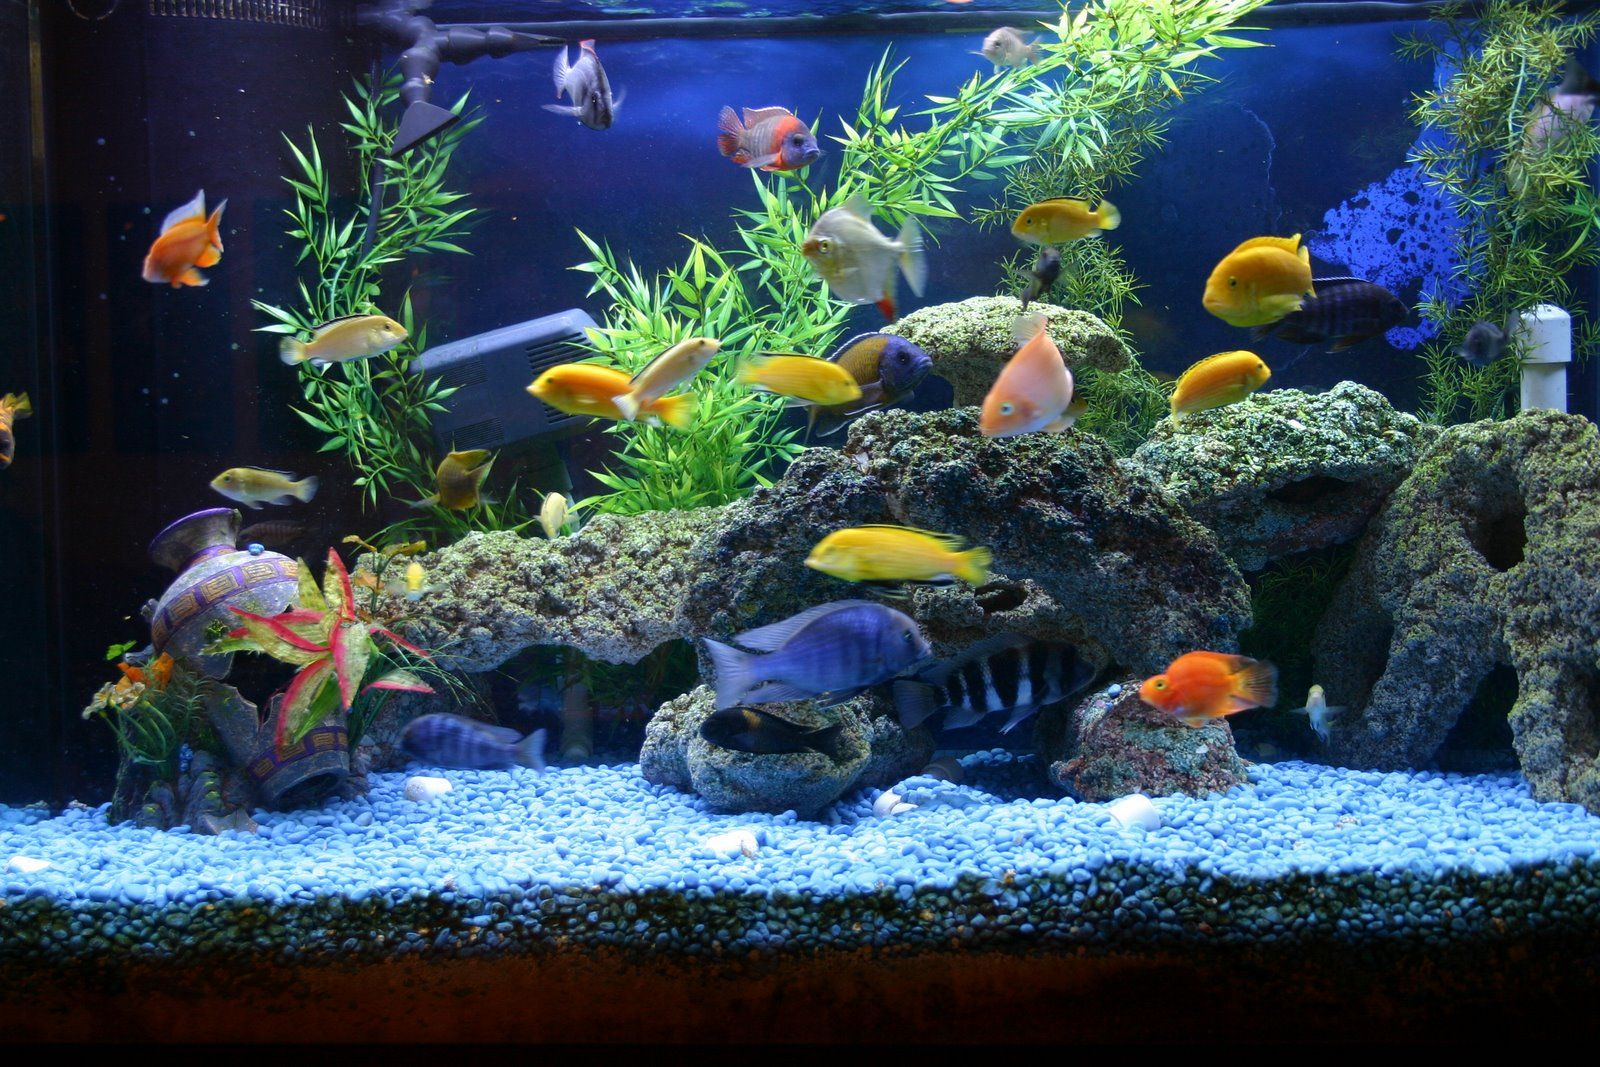 Small aquarium fish tanks - Although I Admit Their Colors Are Gorgeous I Generally Hate Fish And Their Little Puckered